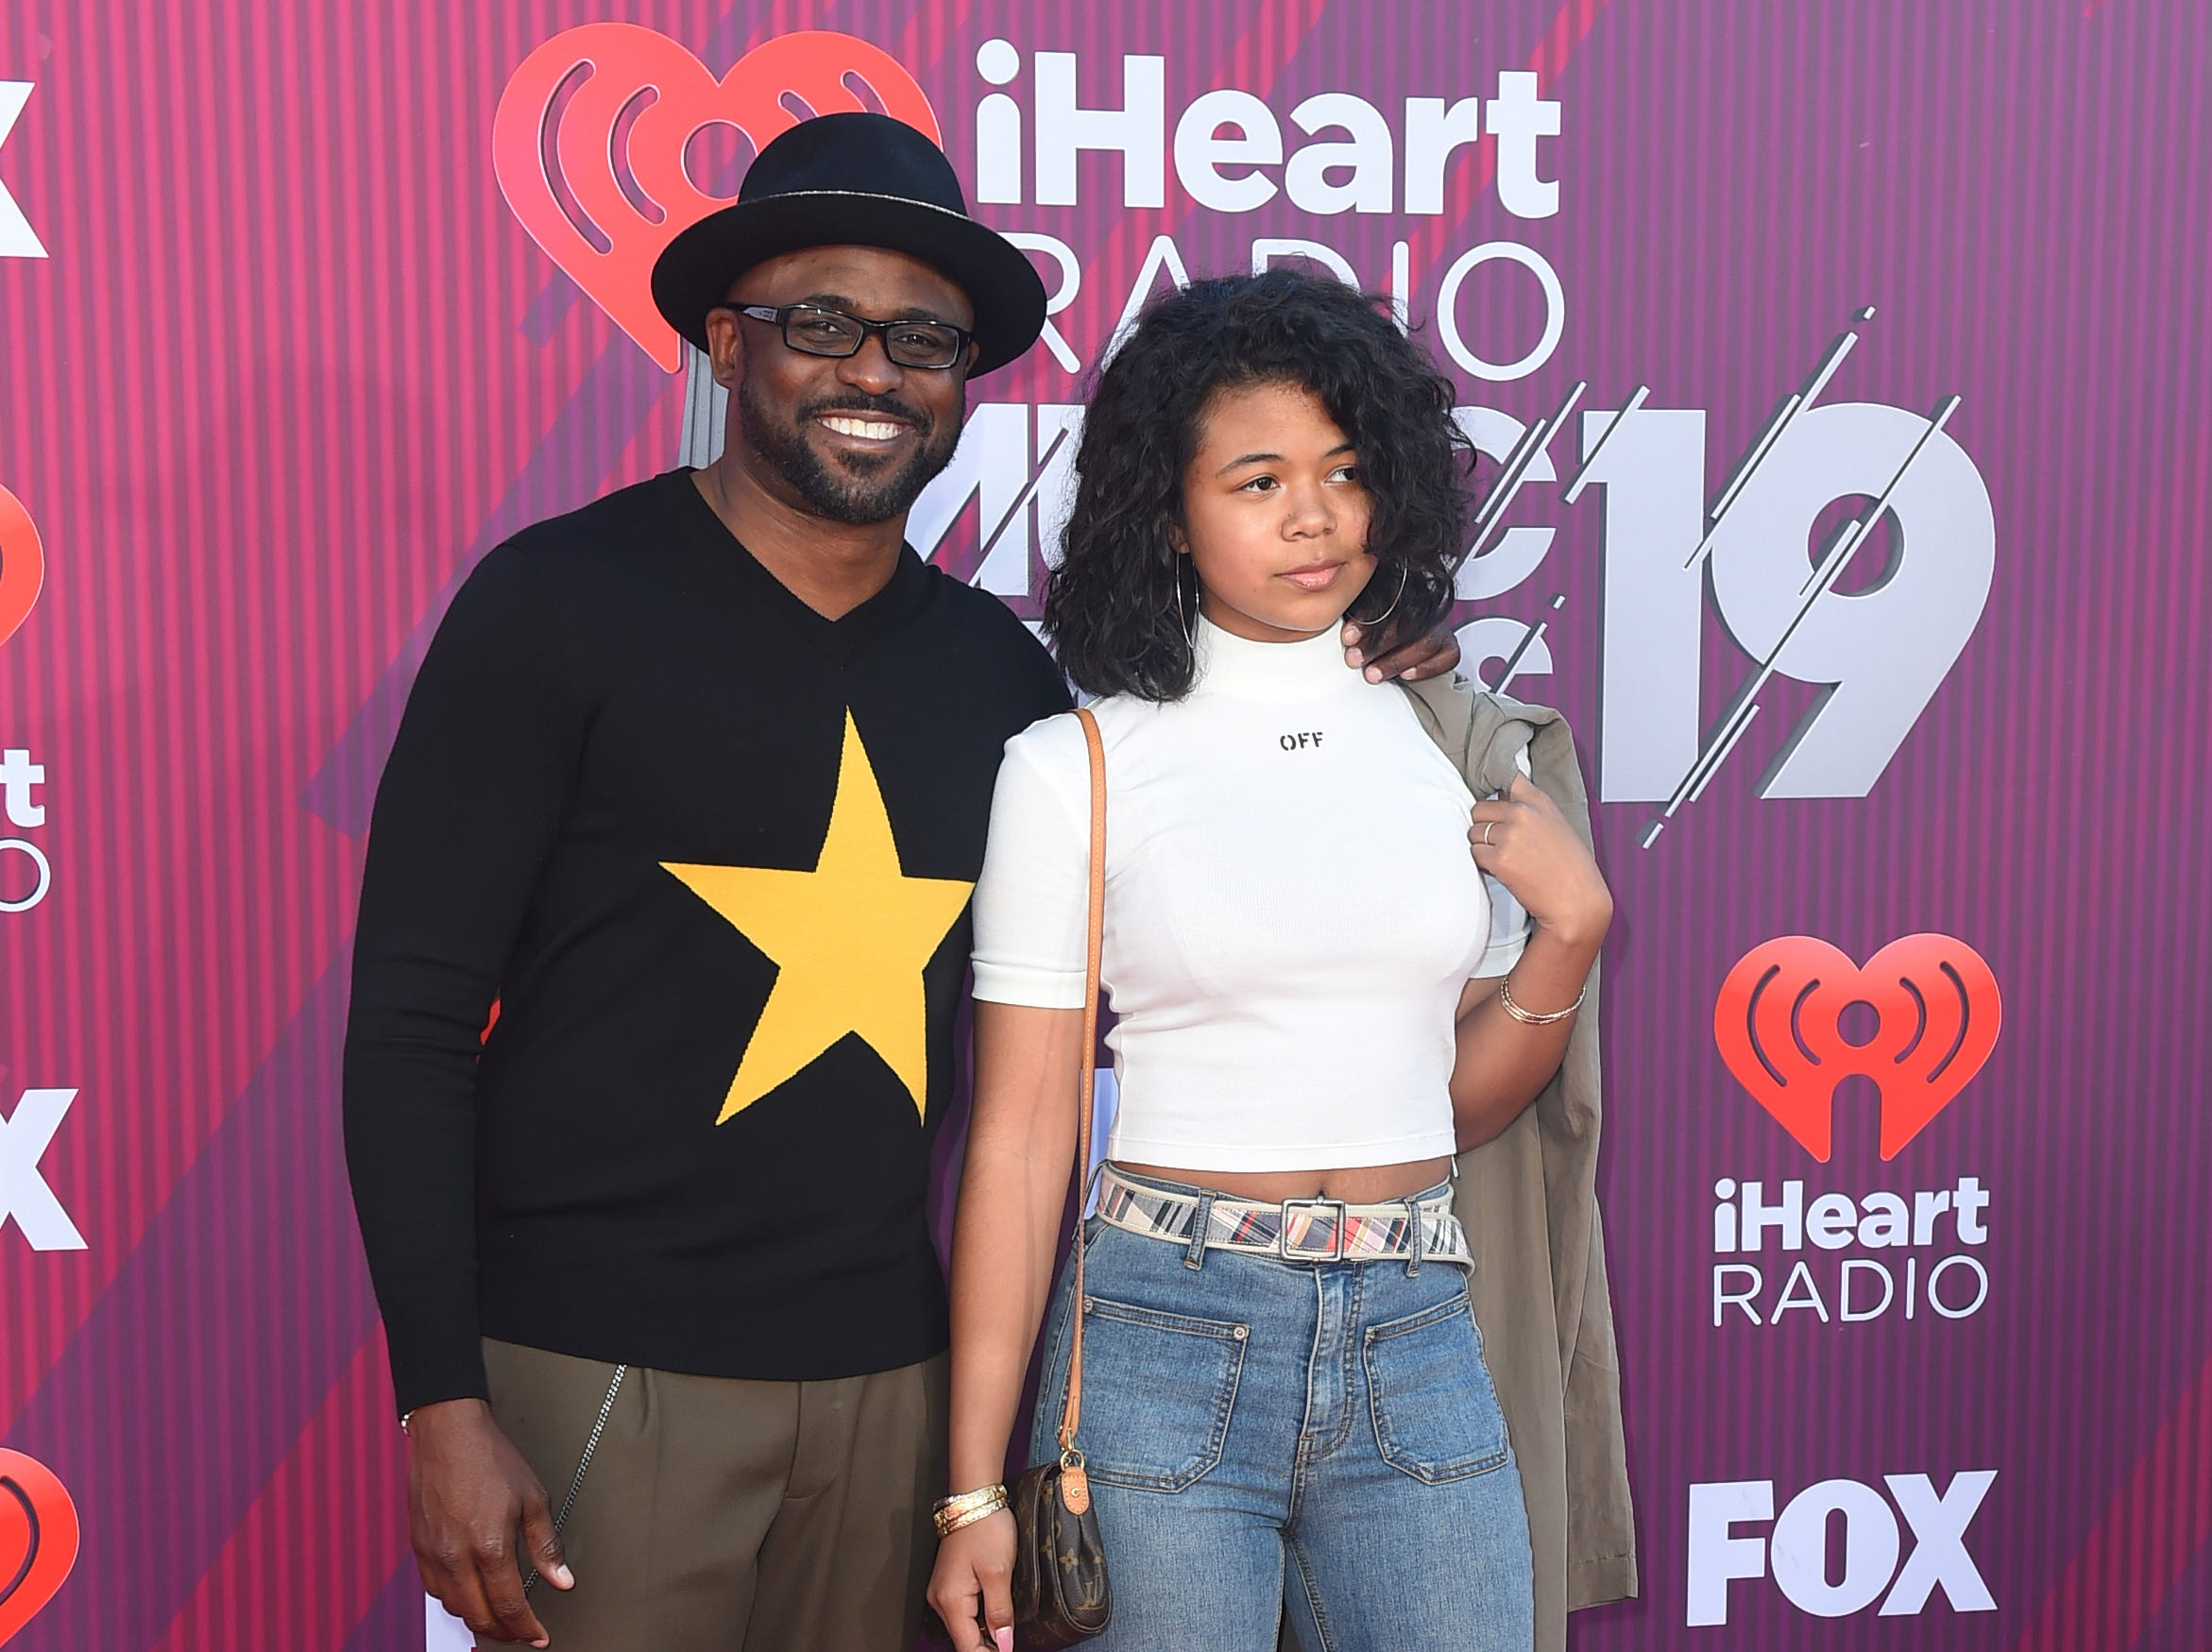 Wayne Brady, left, and his daughter Maile Masako Brady arrive at the iHeartRadio Music Awards.